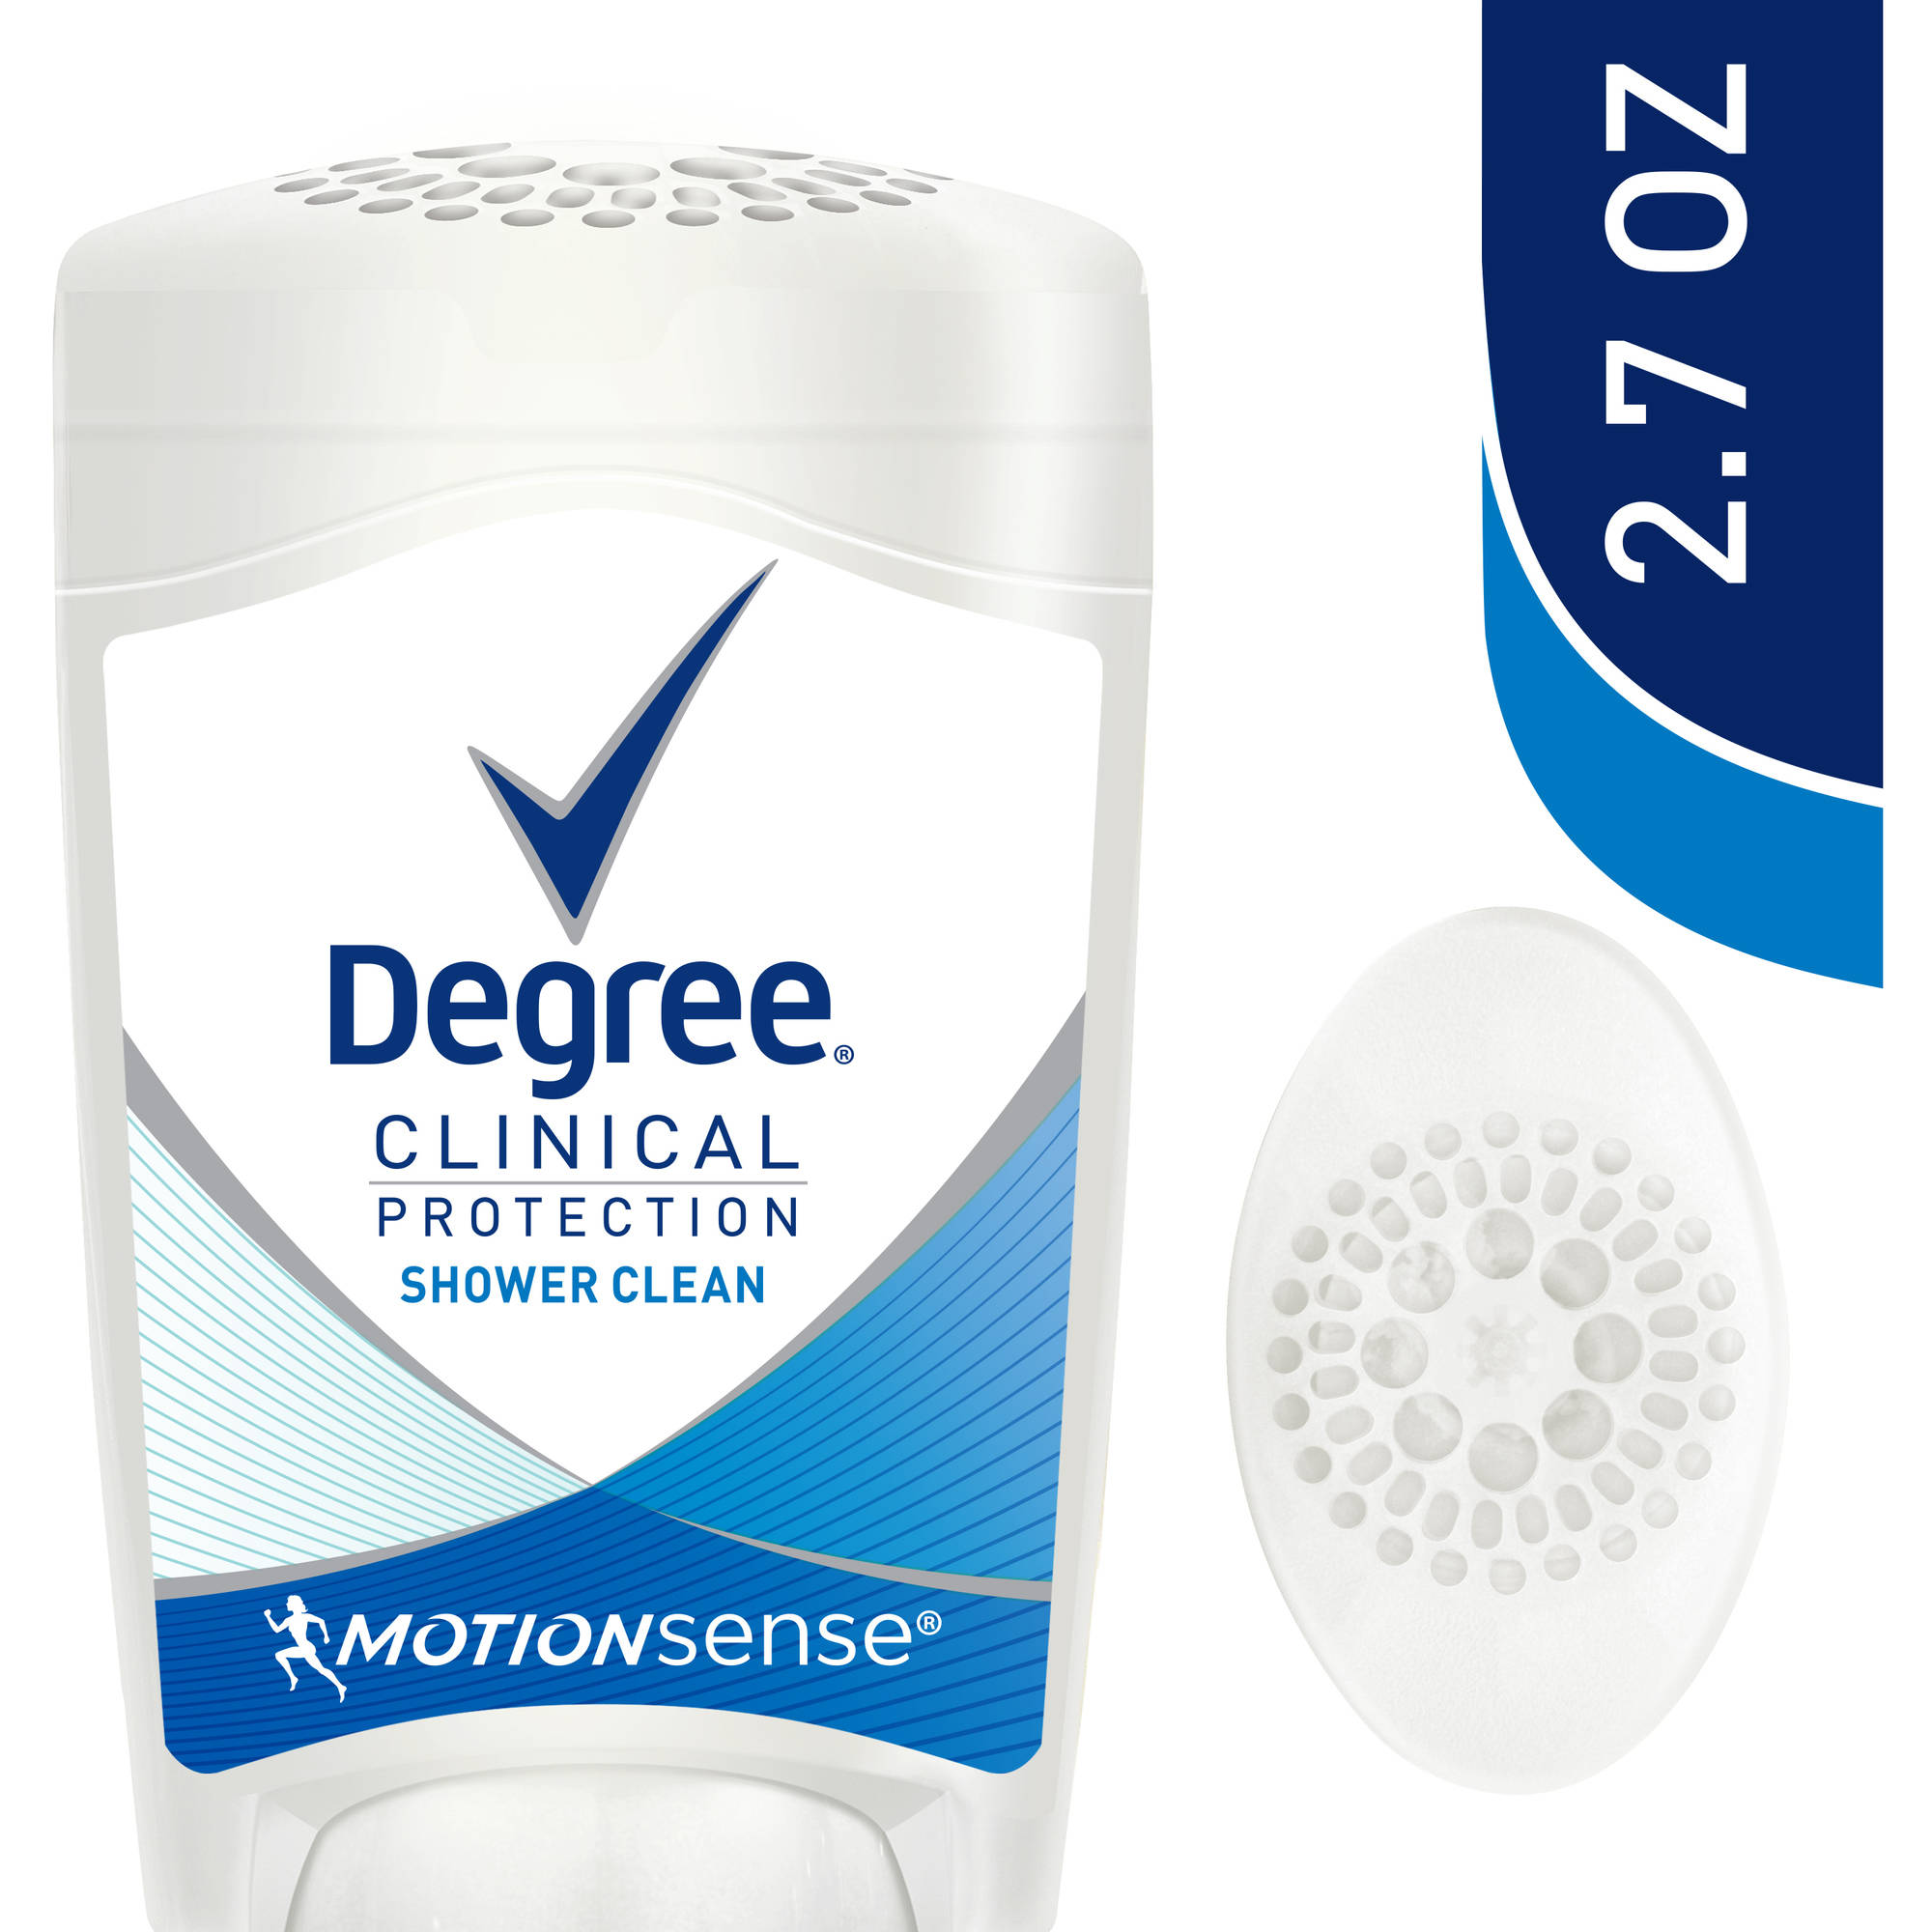 Degree Anti-Perspirant And Deodorant Clinical Protection Shower Clean Degree Women, 2.7 oz